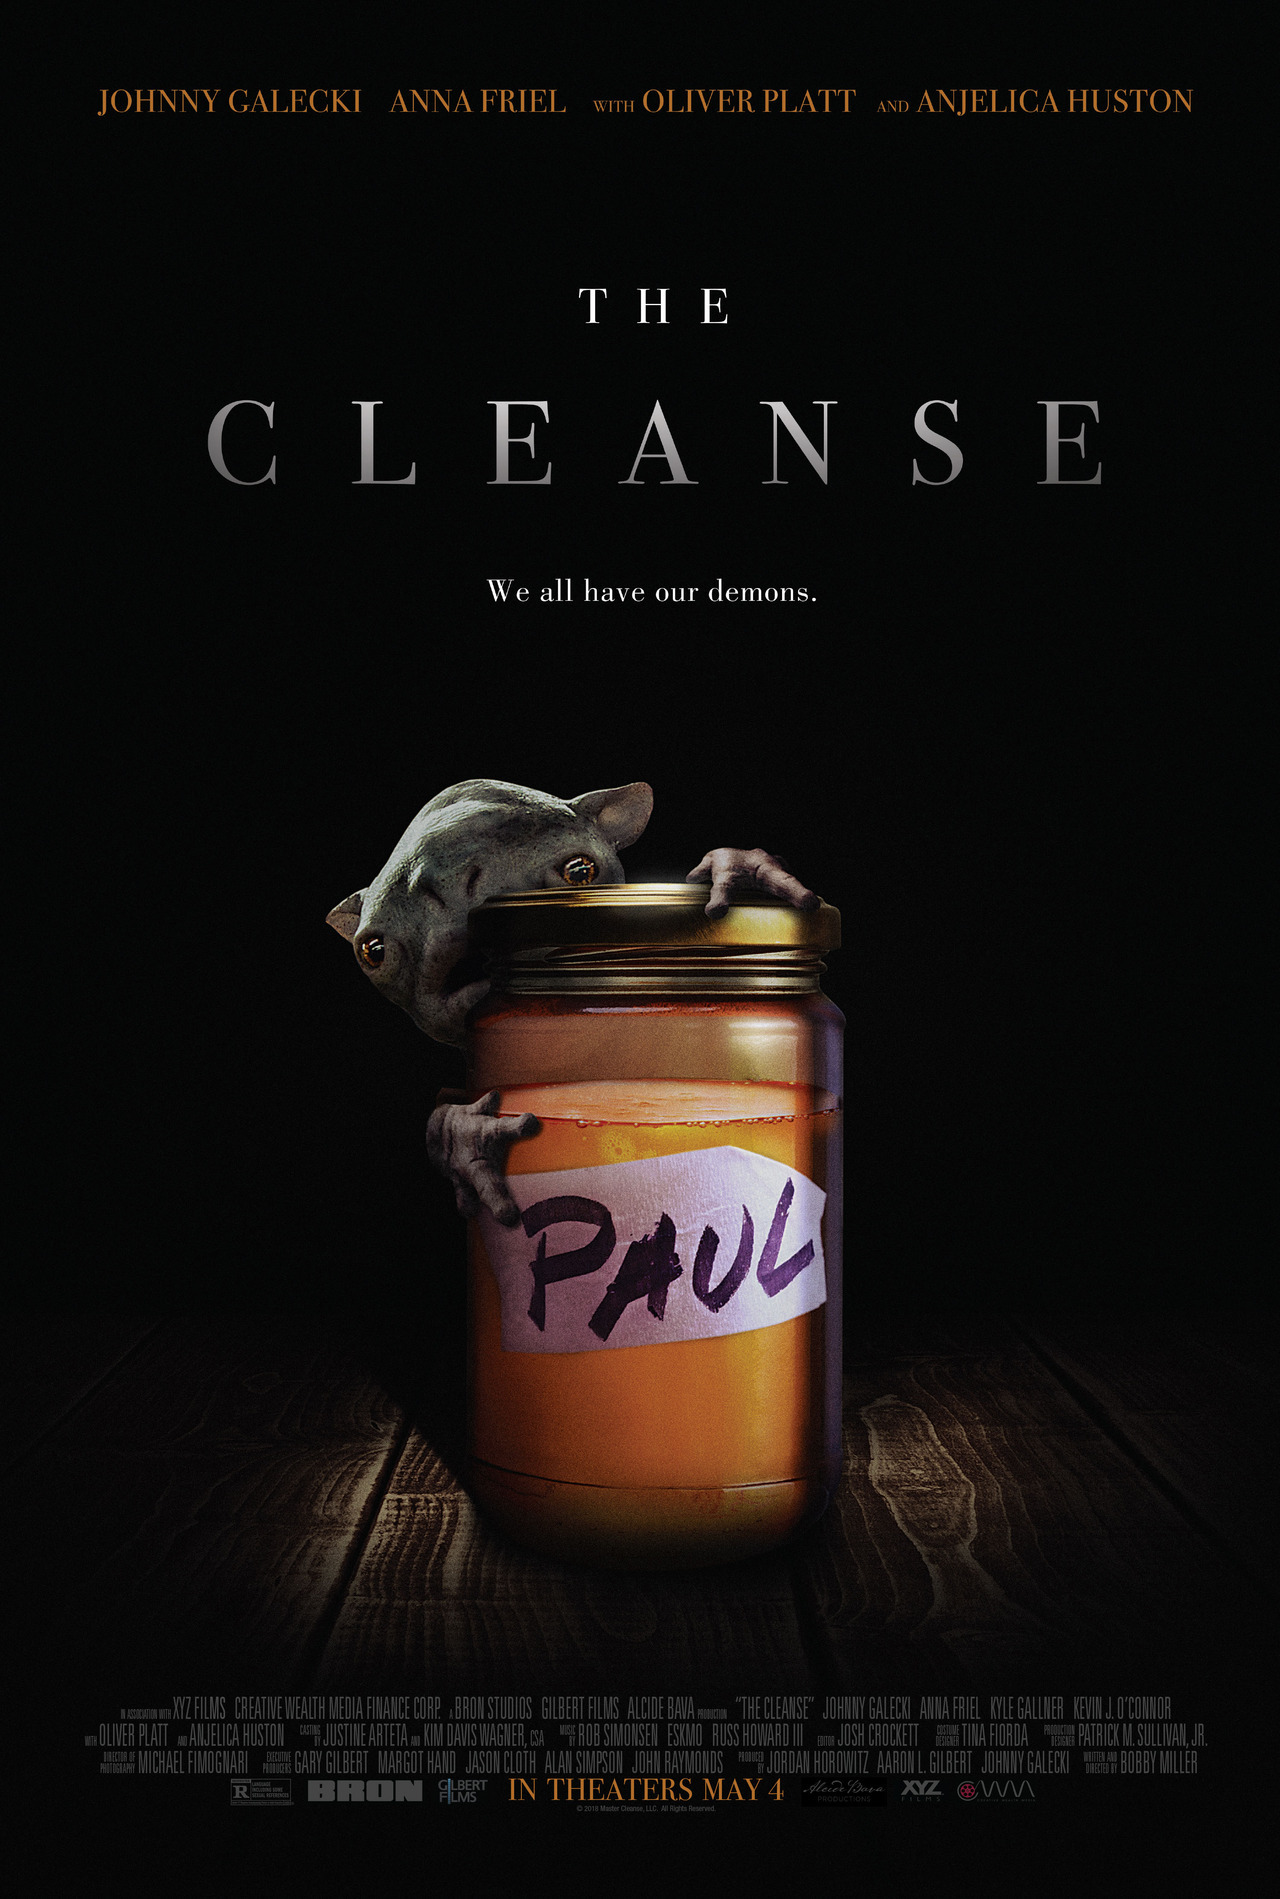 """Here's the poster art for my creature feature debut""""THE CLEANSE"""" coming to theaters & VOD MAY 4th!  You can  check out the trailer here!"""